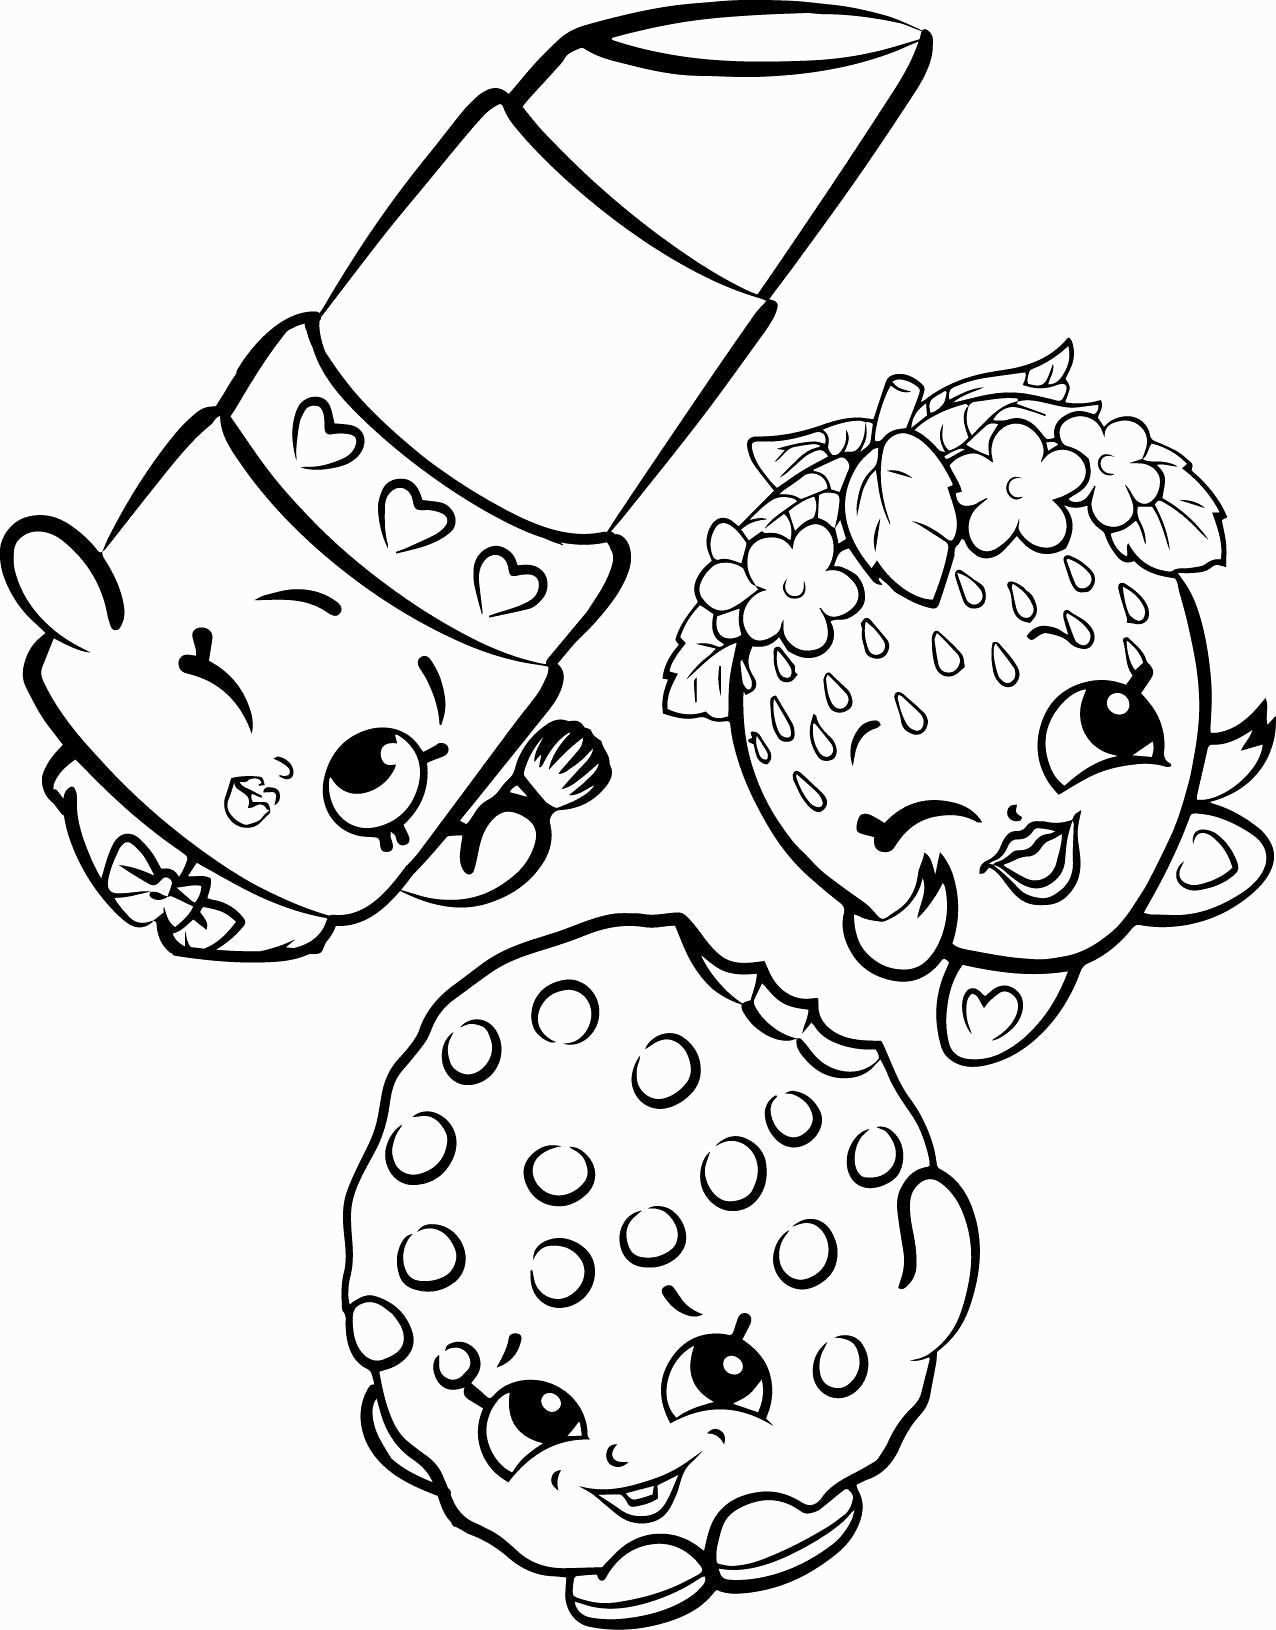 Fruit Coloring Stickers Awesome Best Coloring Books In Bulk